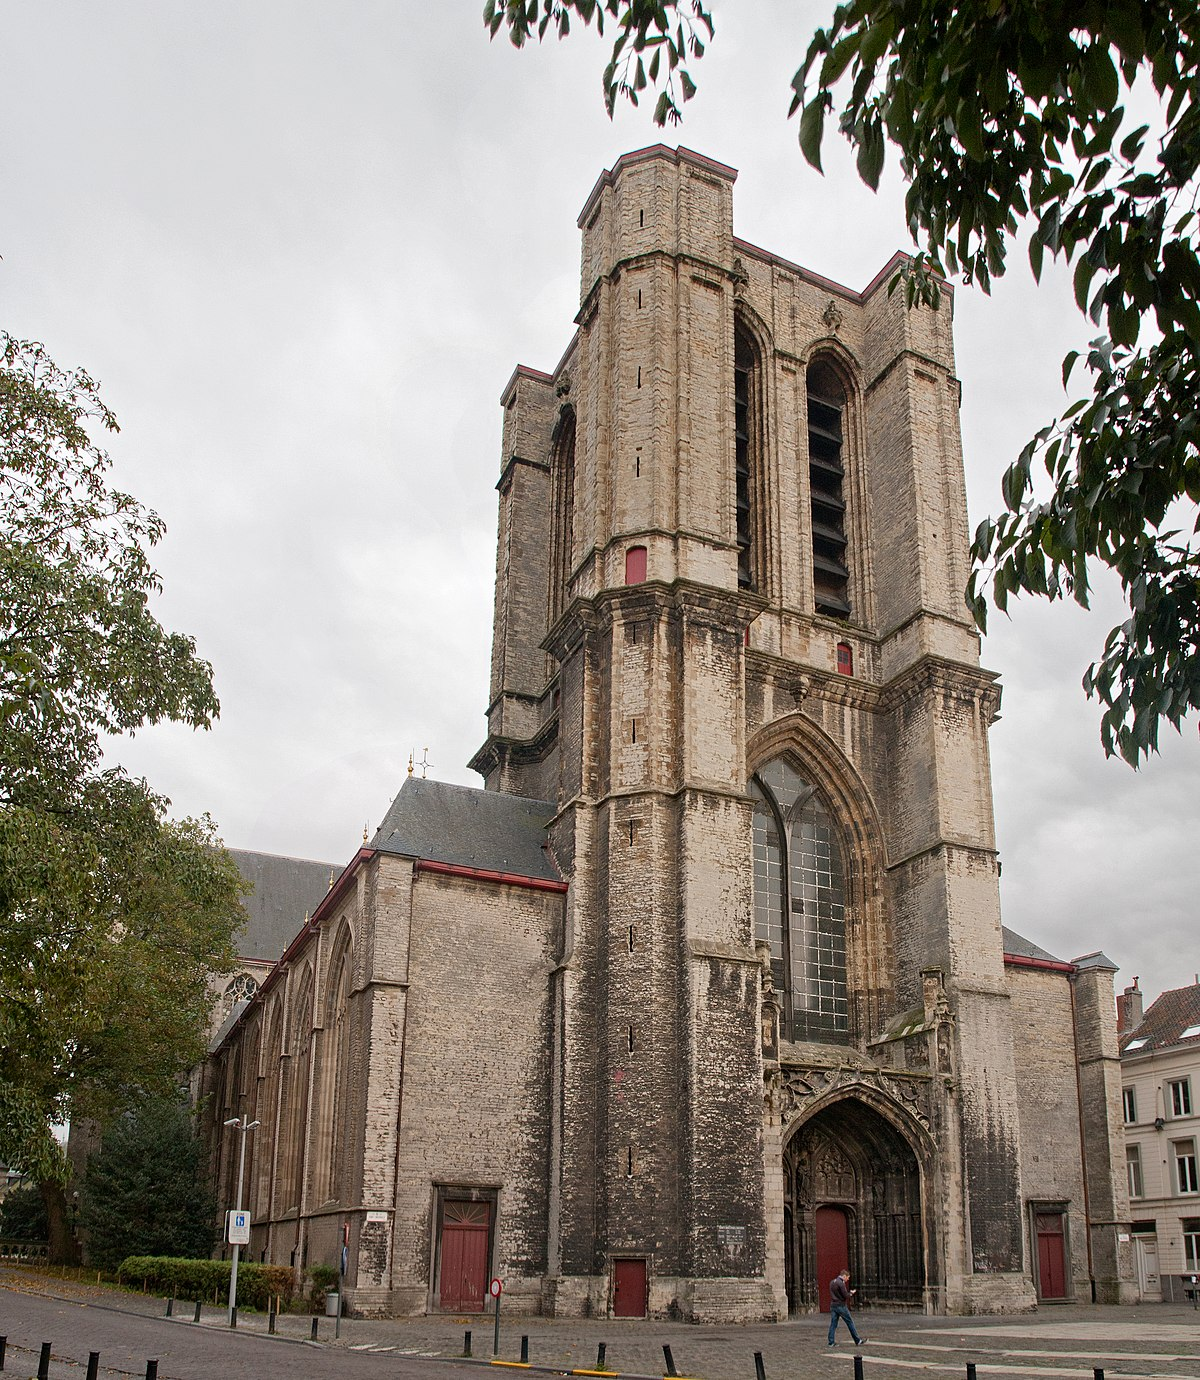 Saint Michael's Church, Ghent - Wikipedia